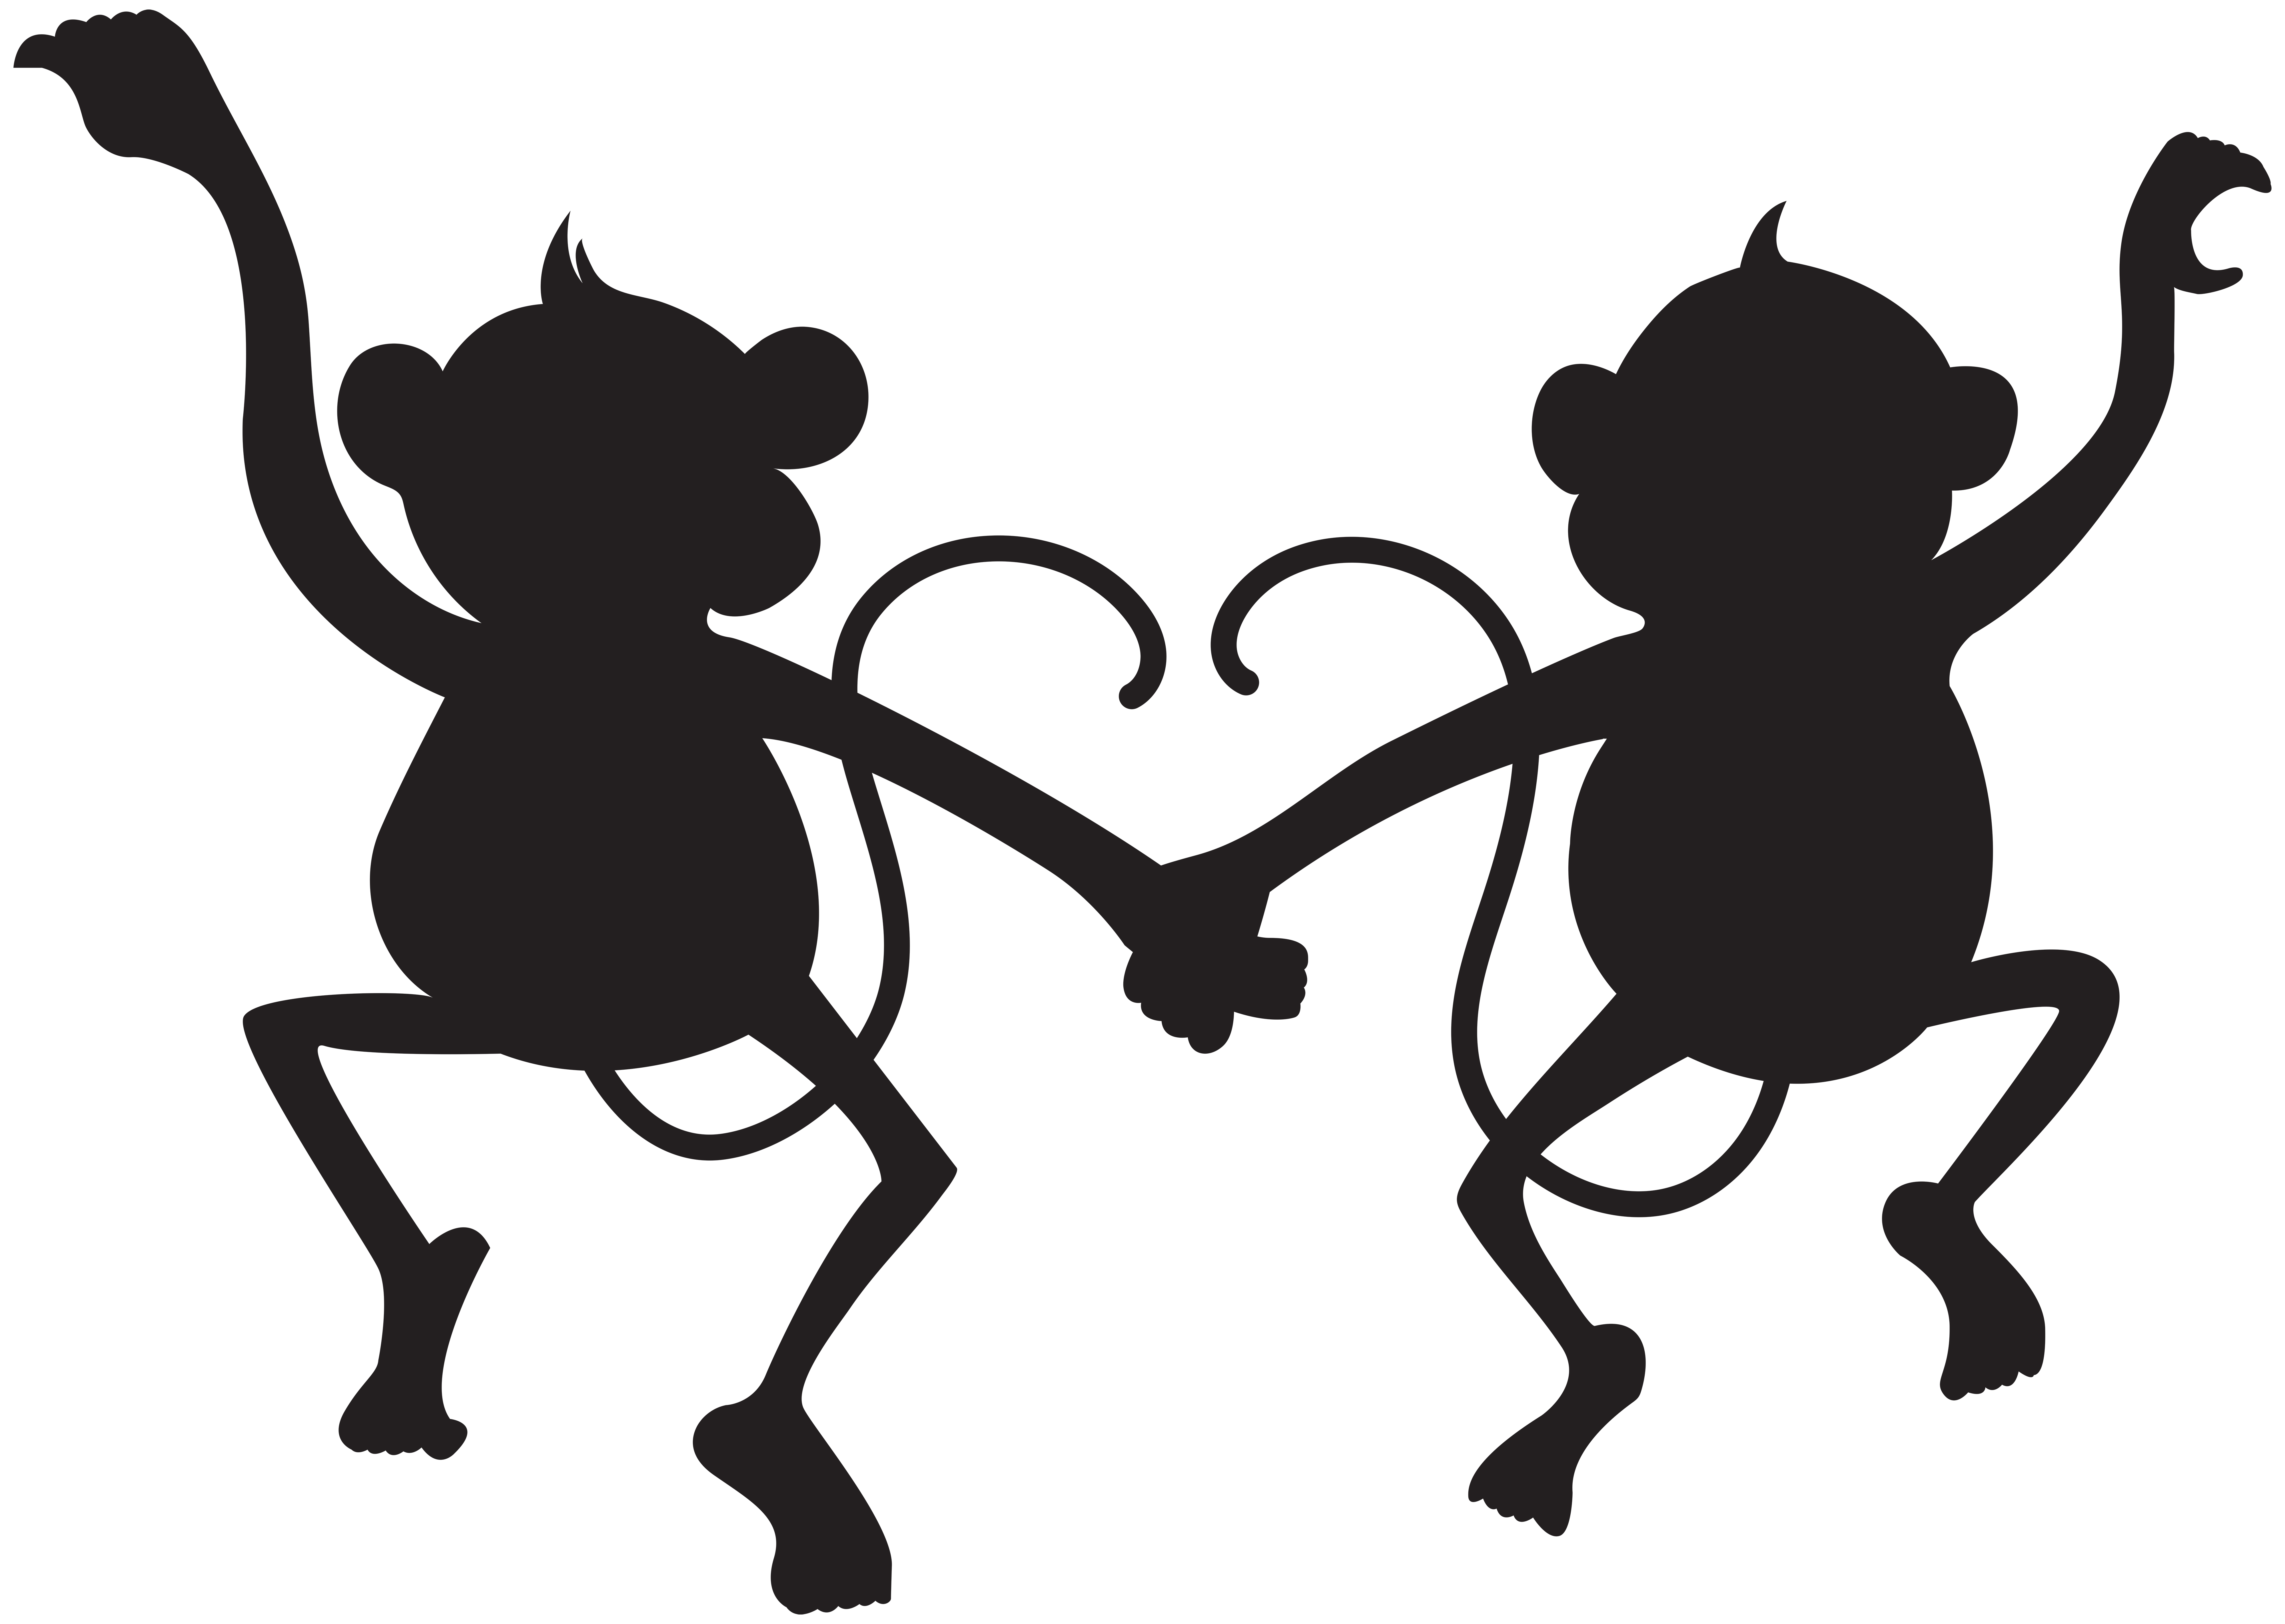 Monkey silhouette png - photo#7